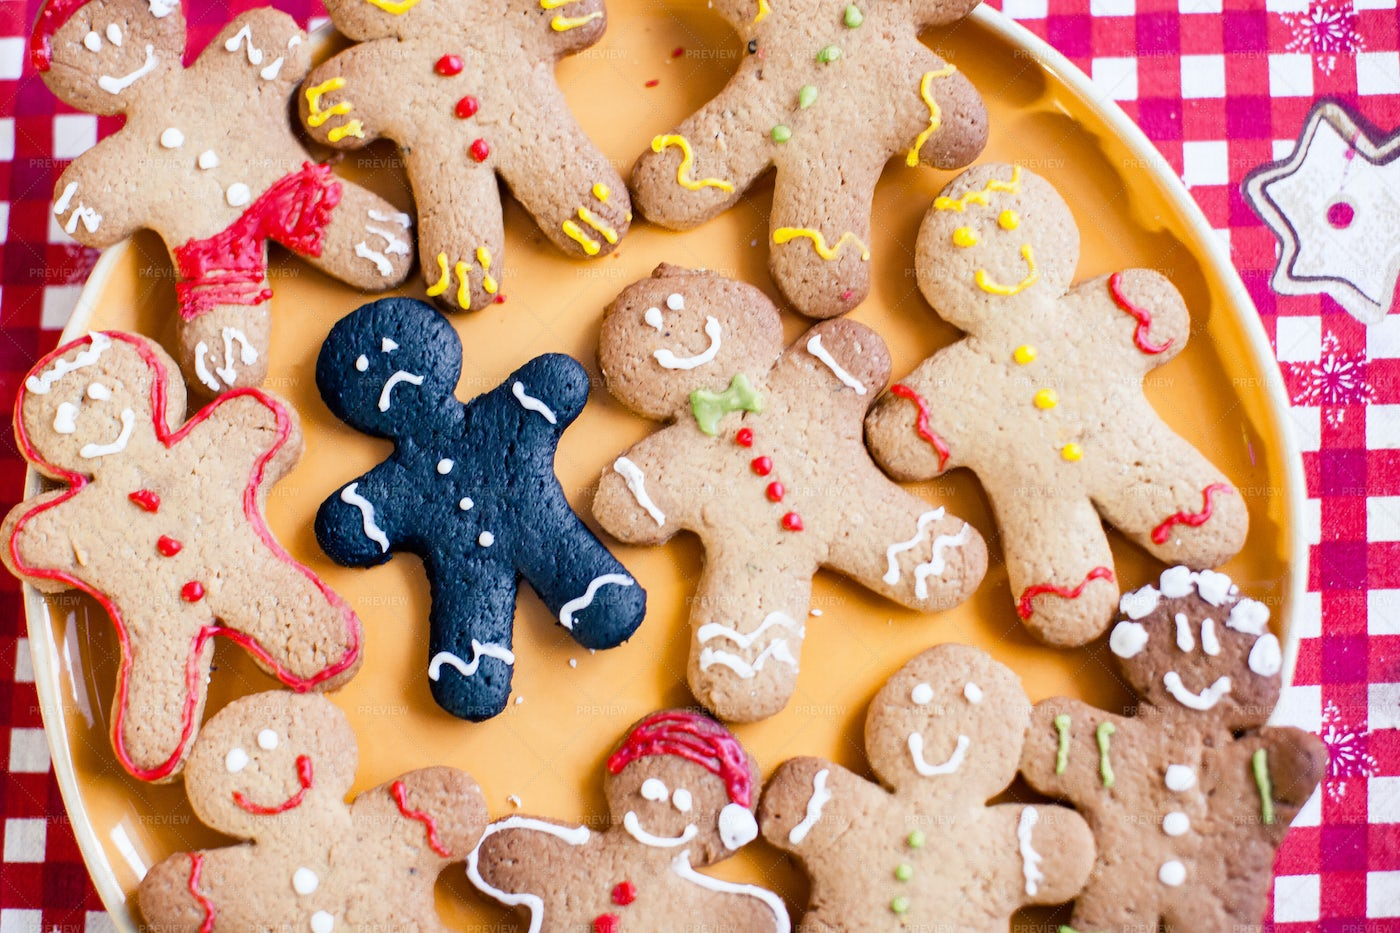 Colorful Gingerbread: Stock Photos